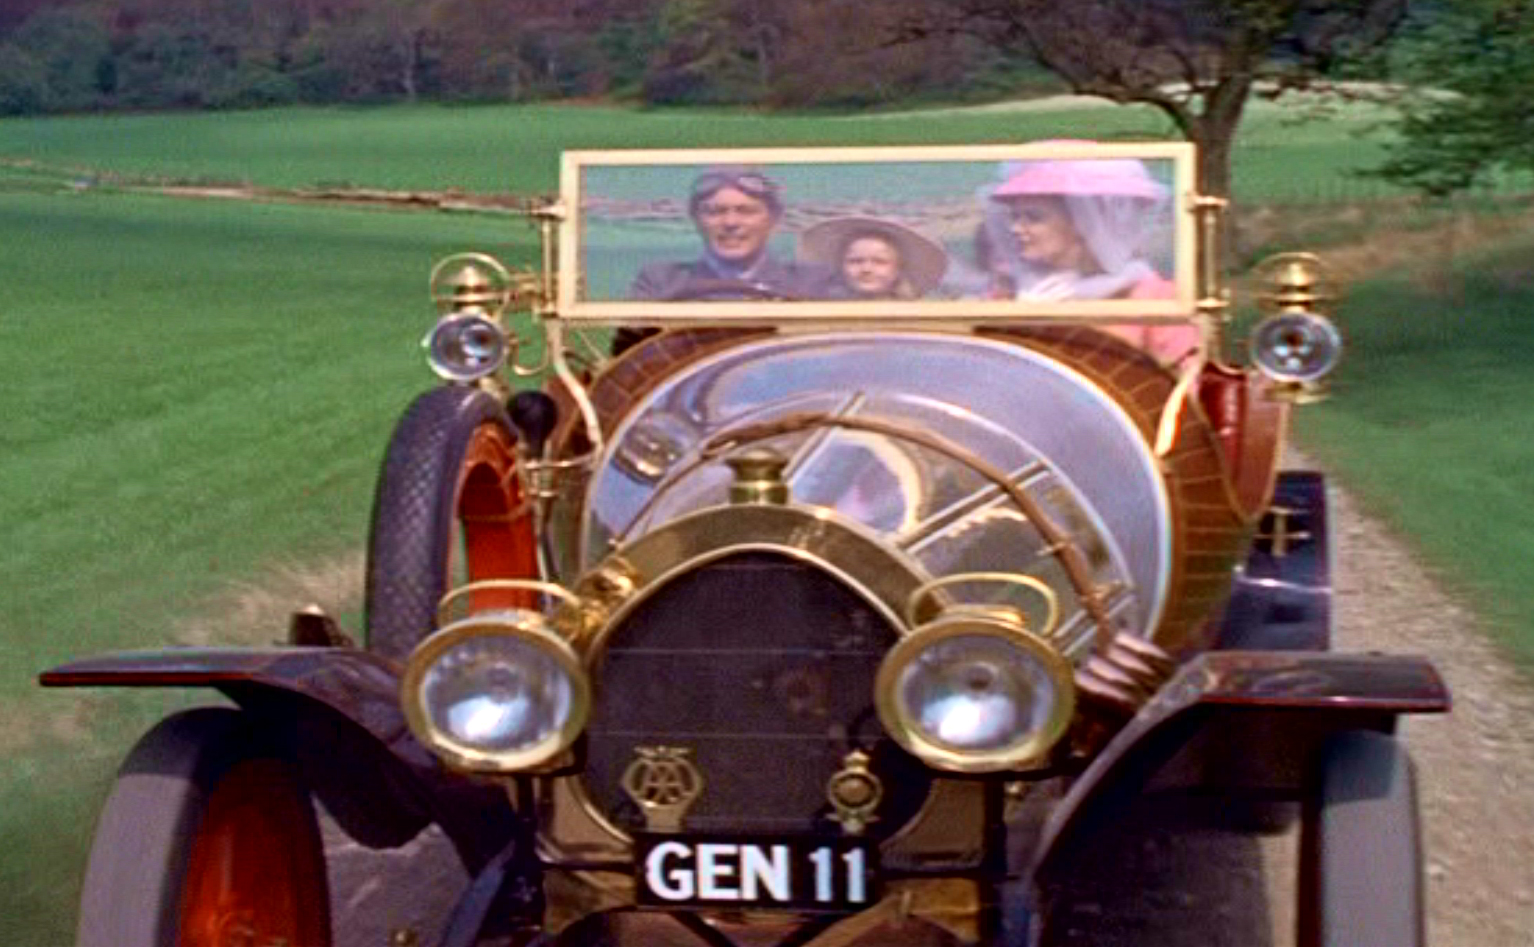 Chitty Chitty Bang Bang Car 3 Chitty Chitty Bang Bang to be Sold at Auction